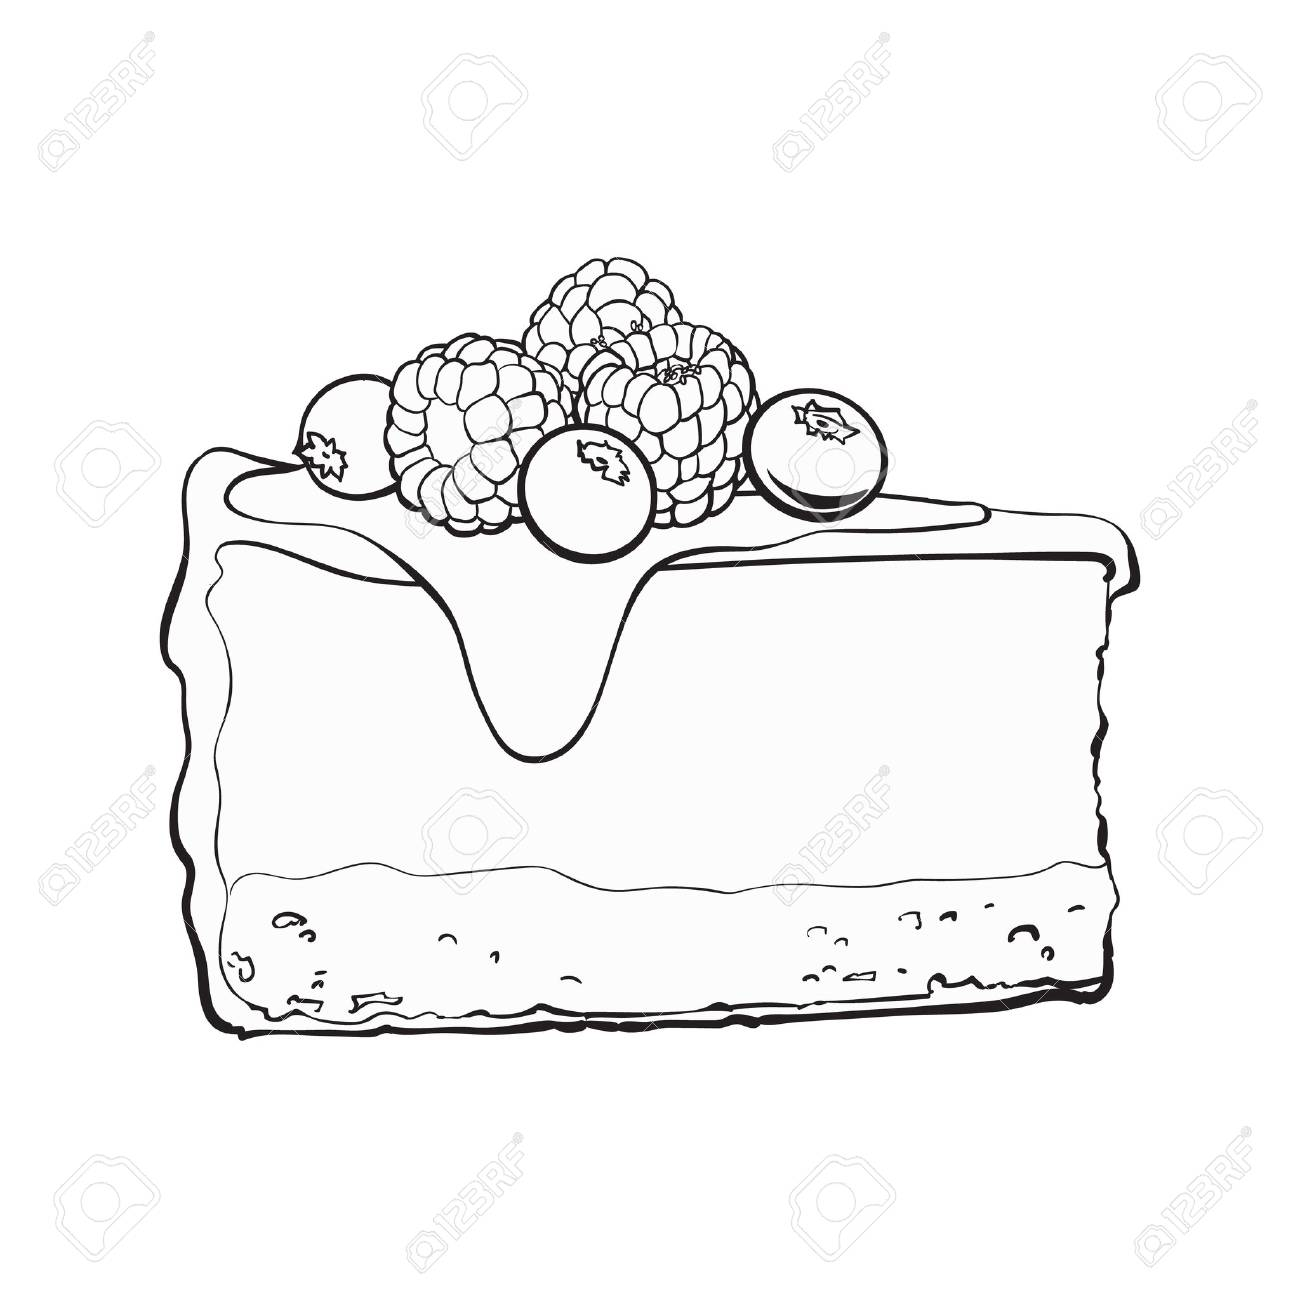 1300x1300 Black And White Hand Drawn Piece Of Cheesecake Decorated